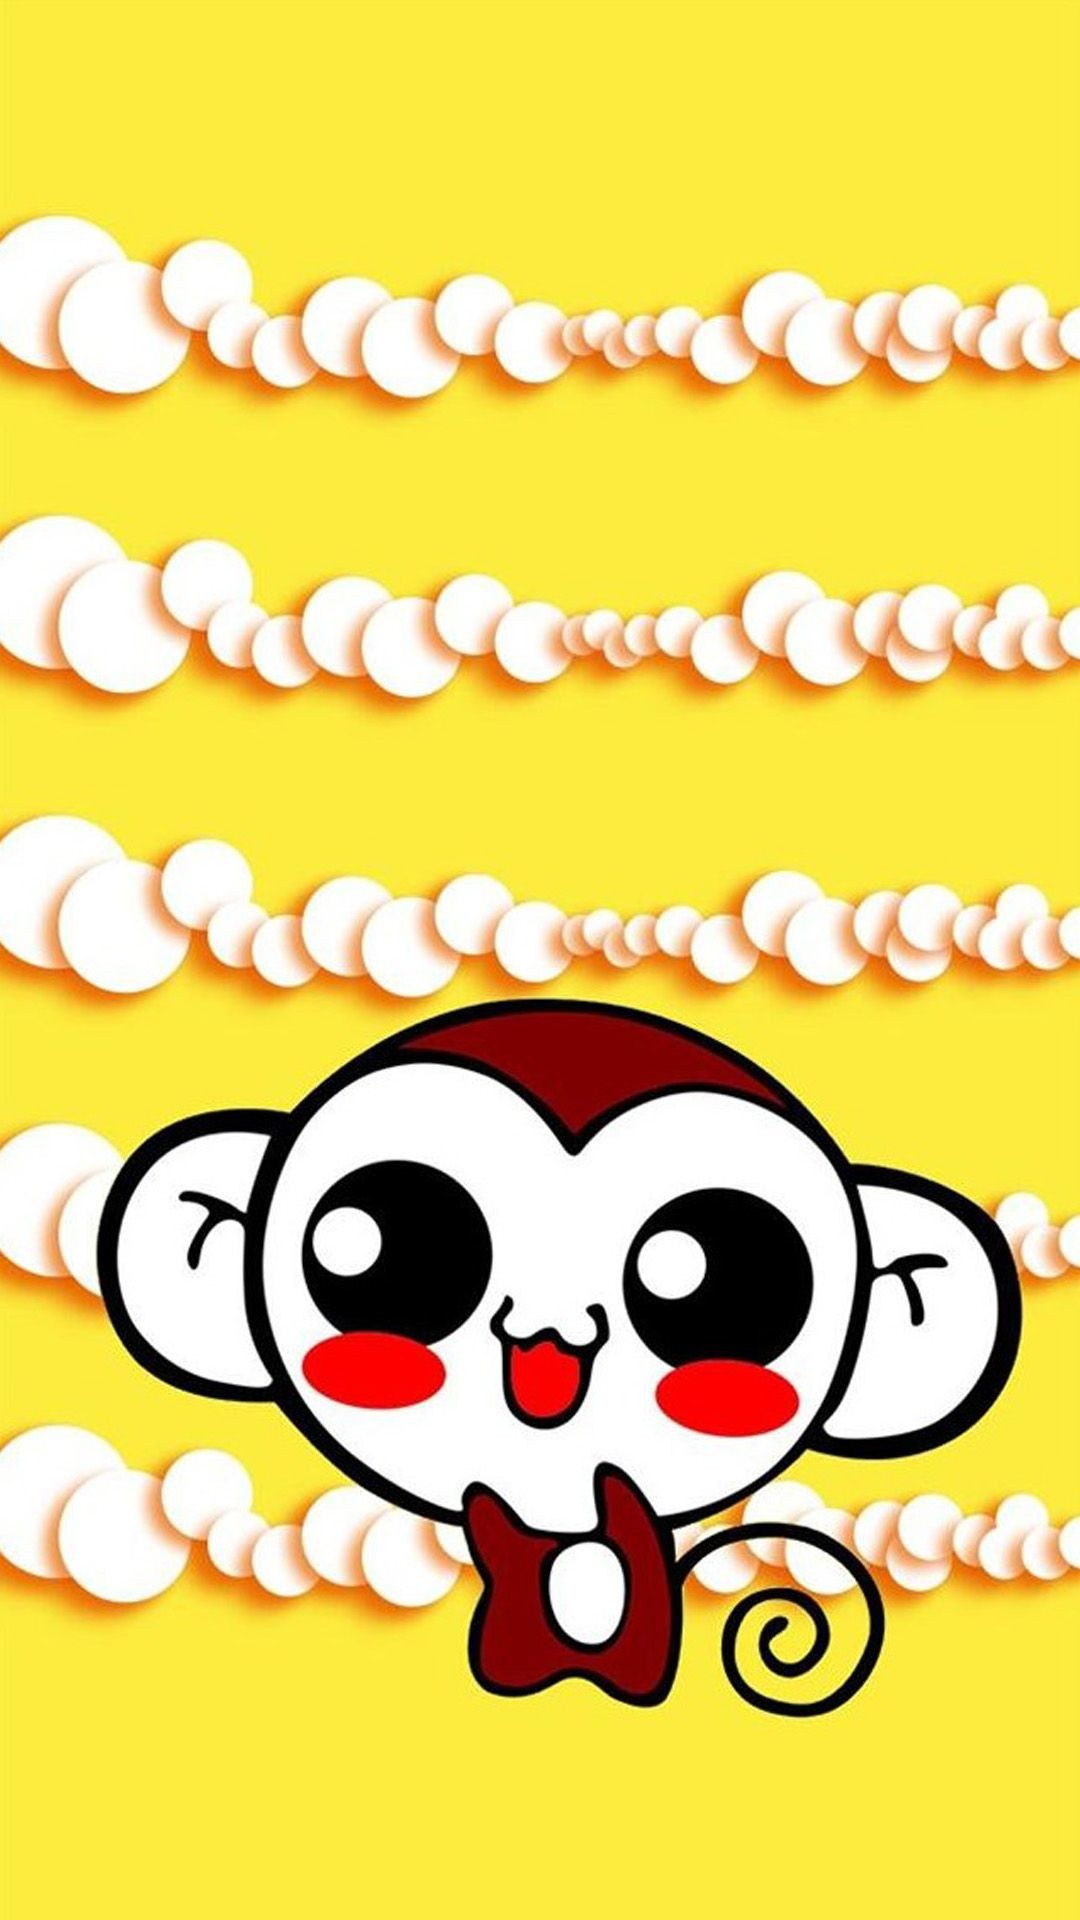 1080x1920 Cute Sweet Hippie Monkey iPhone 6 Wallpaper Download